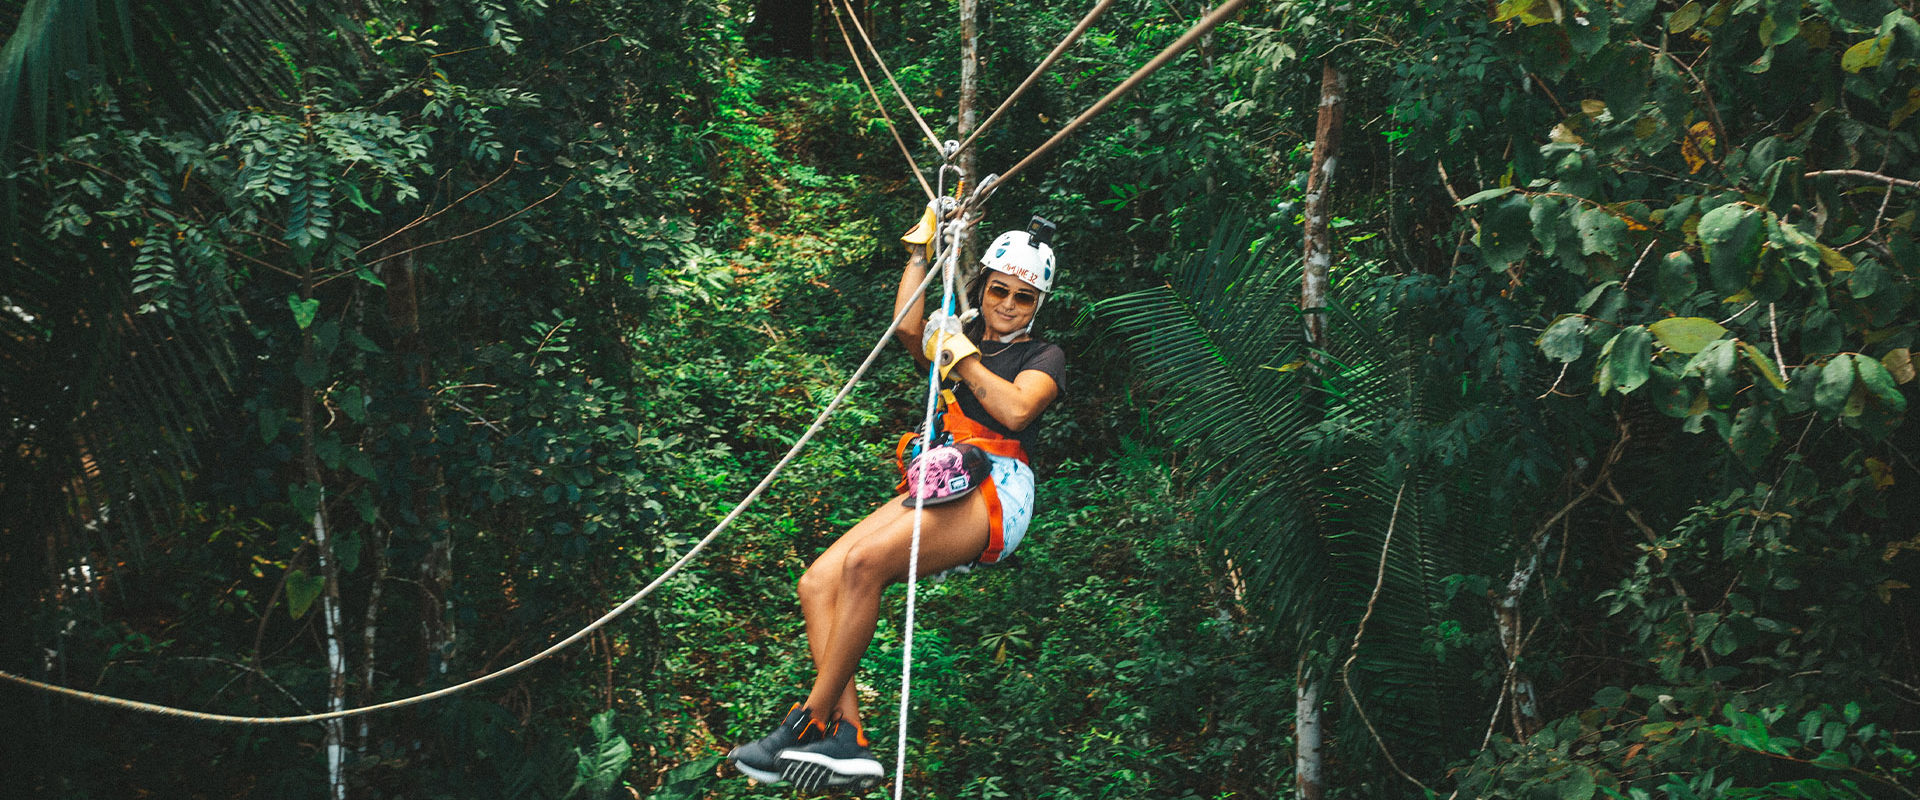 Cave Tubing and Zip Lining